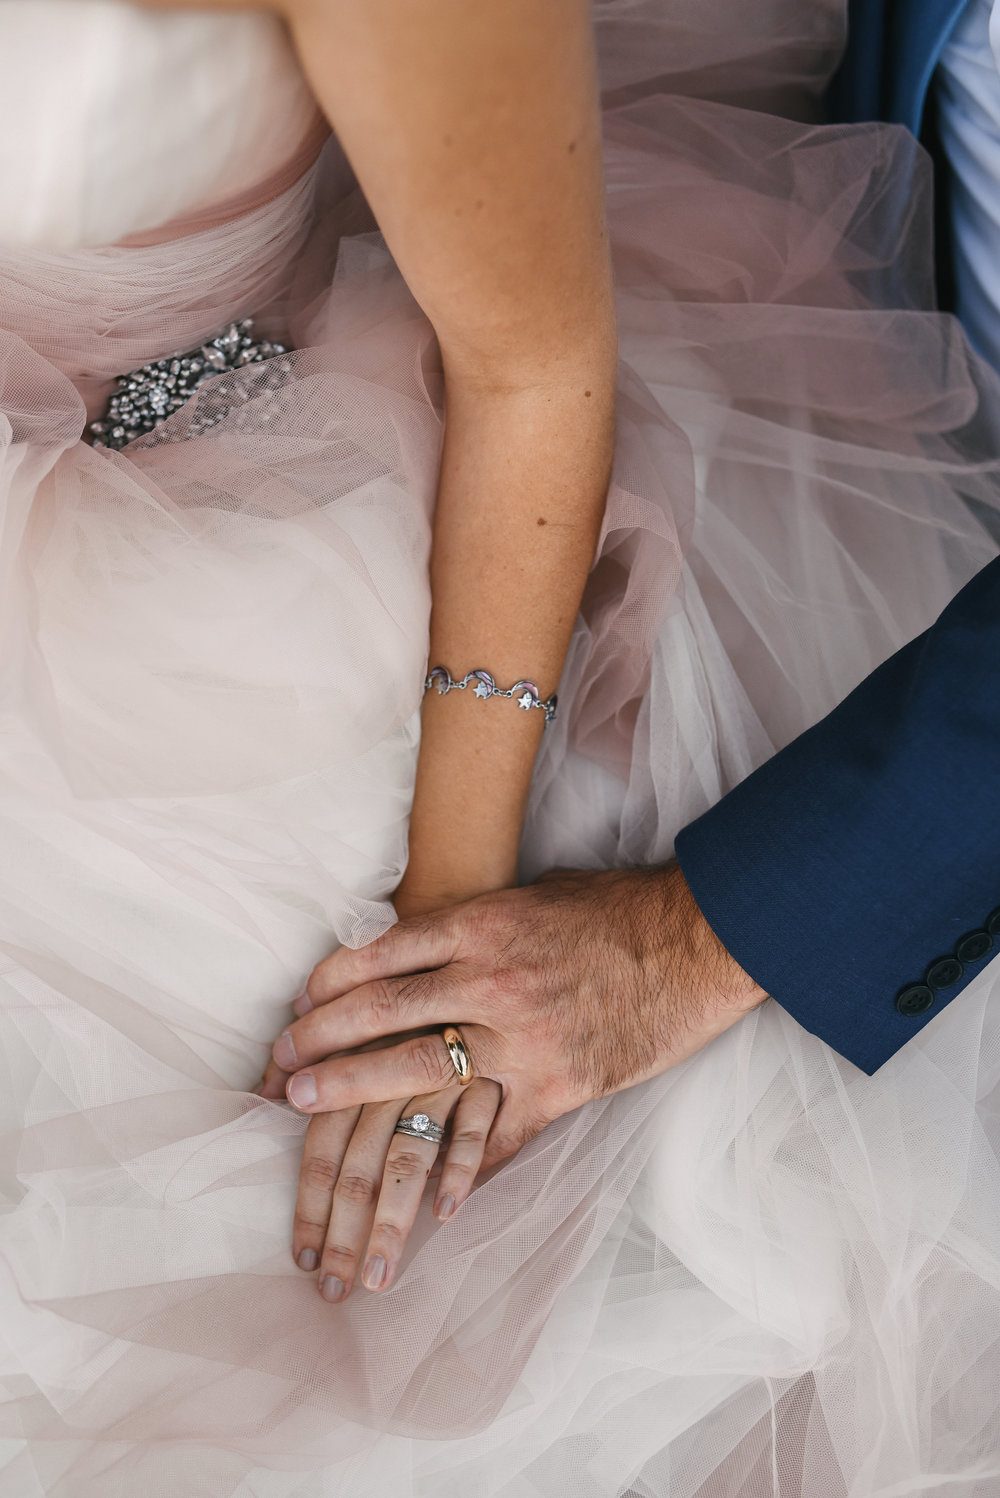 Vintage, DIY, Rustic, Germantown, Baltimore Wedding Photographer, Alternative, Outdoor Wedding, Whimsical, Campground, Bride and Groom, Detail Photo, Wedding Jewelry, Wedding Rings, Holding Hands